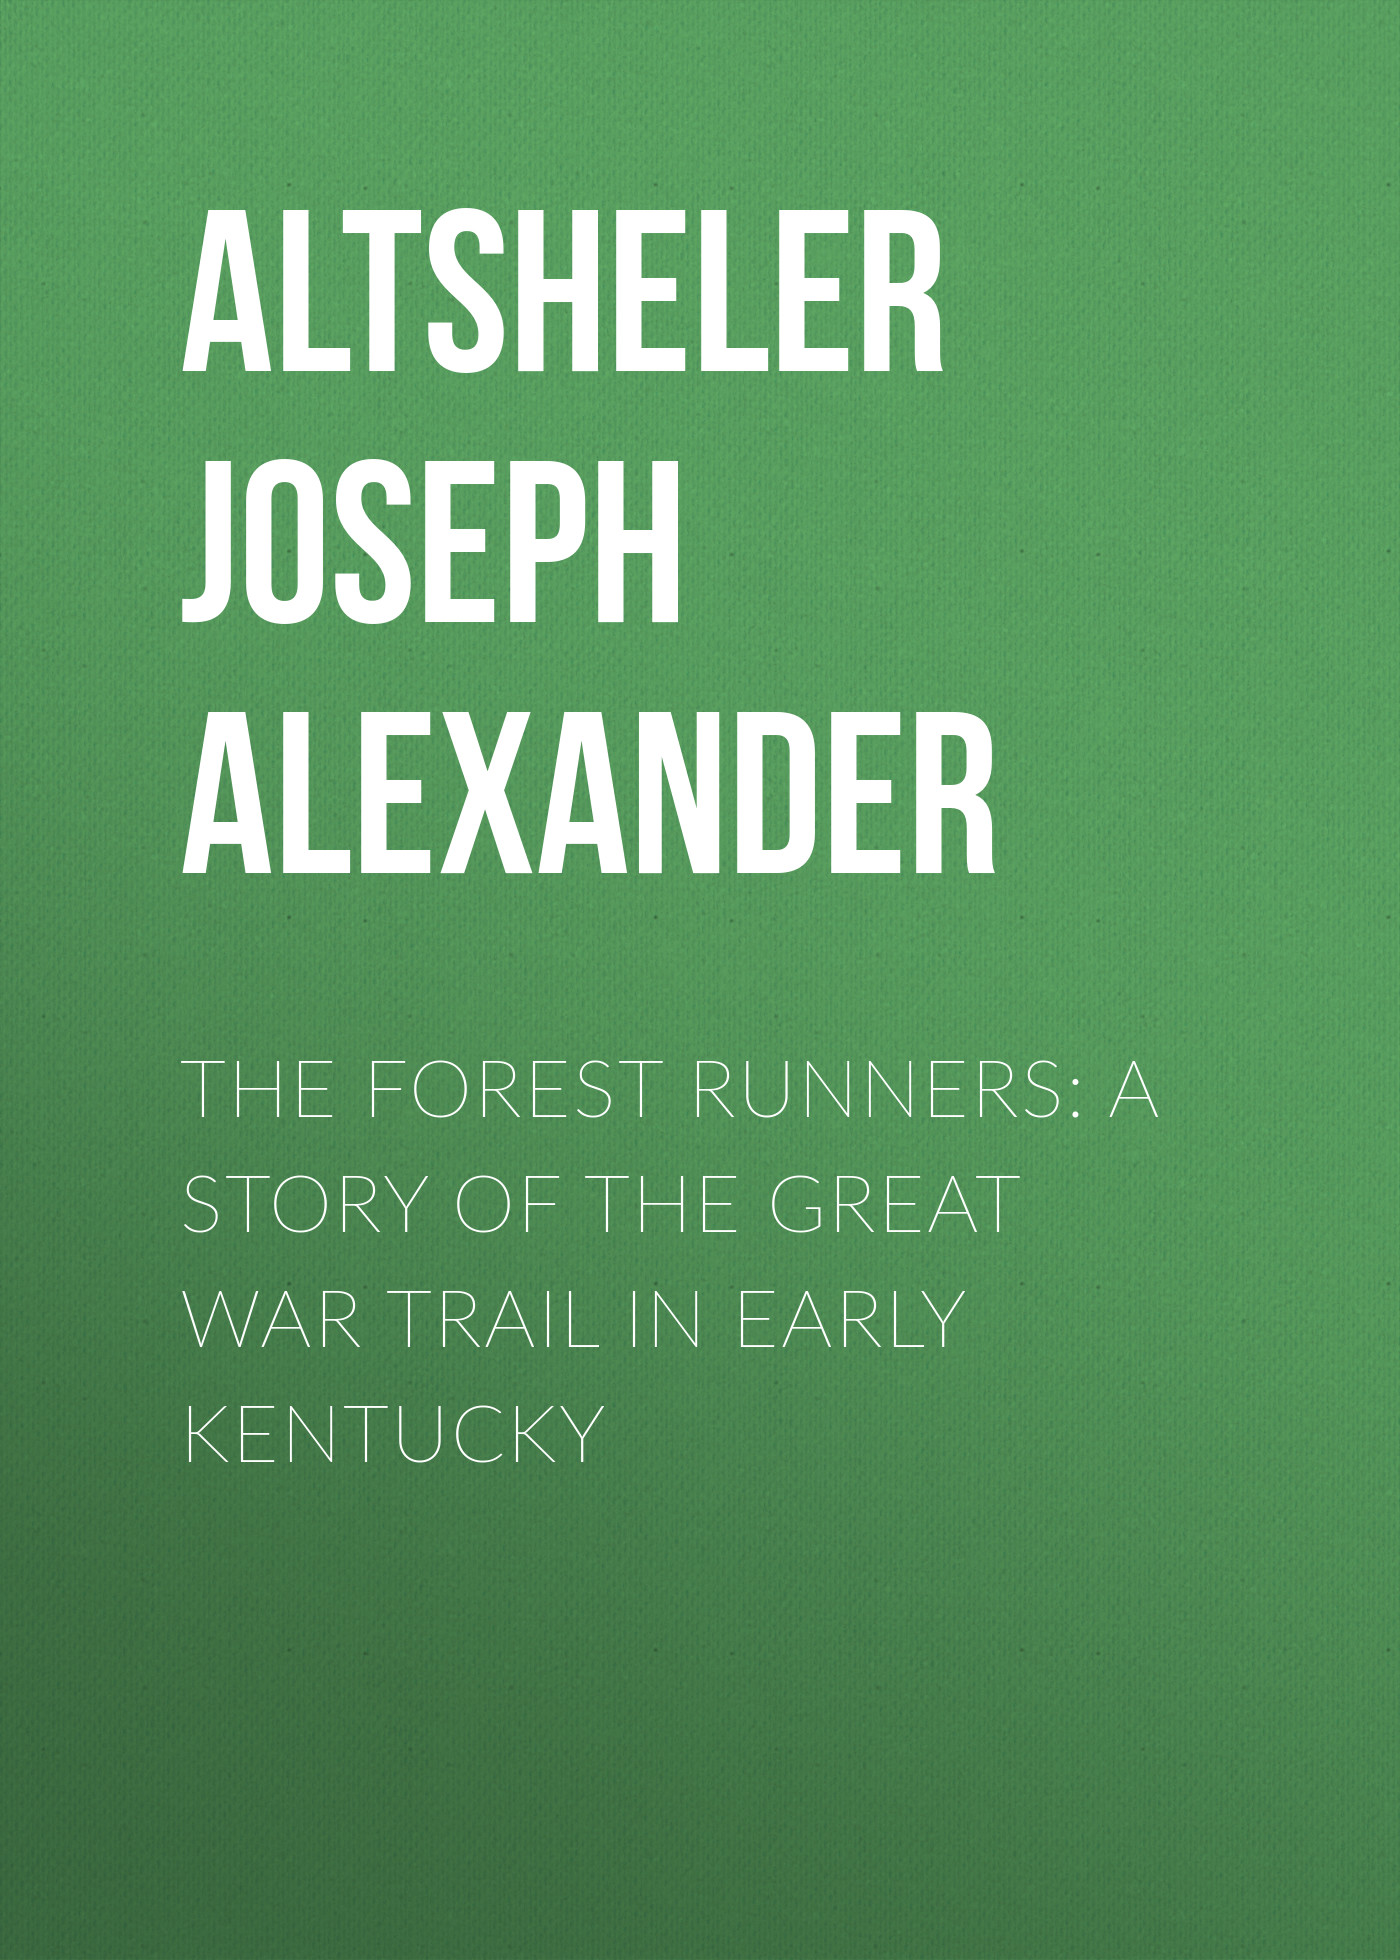 Altsheler Joseph Alexander The Forest Runners: A Story of the Great War Trail in Early Kentucky path in the bamboo forest pattern stair stickers